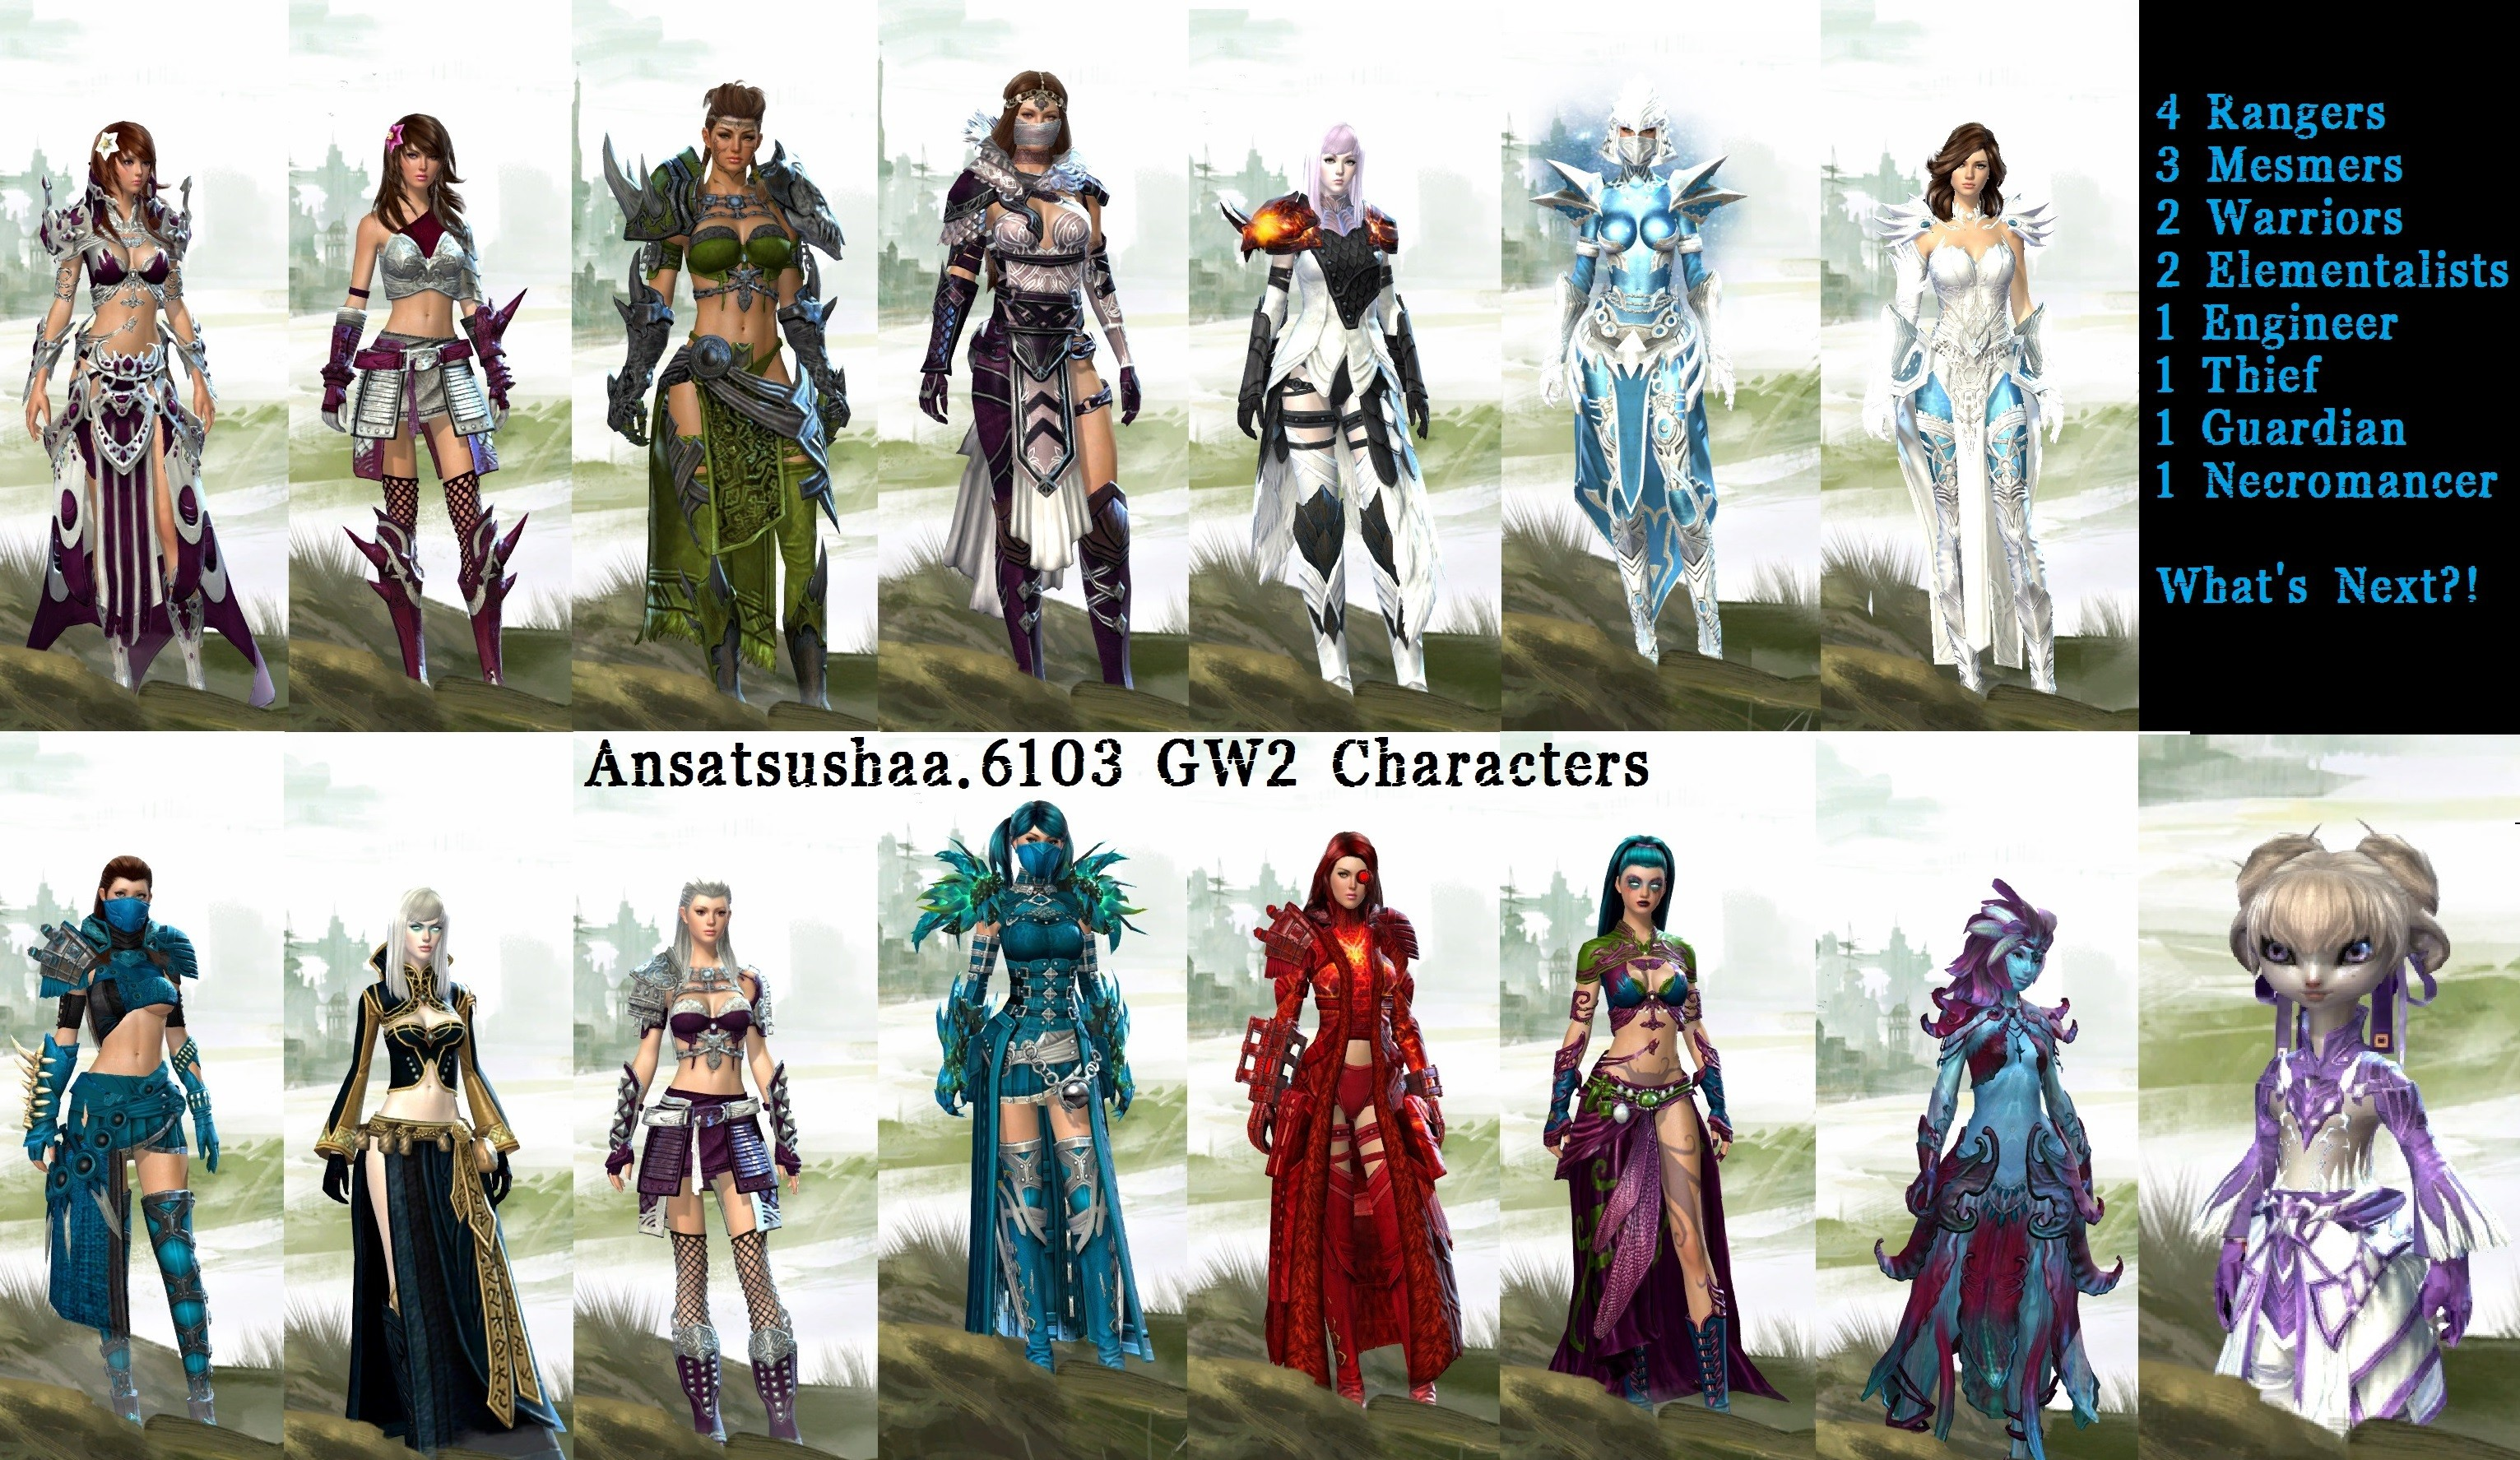 Guild Wars 2 - My gw2 characters atm